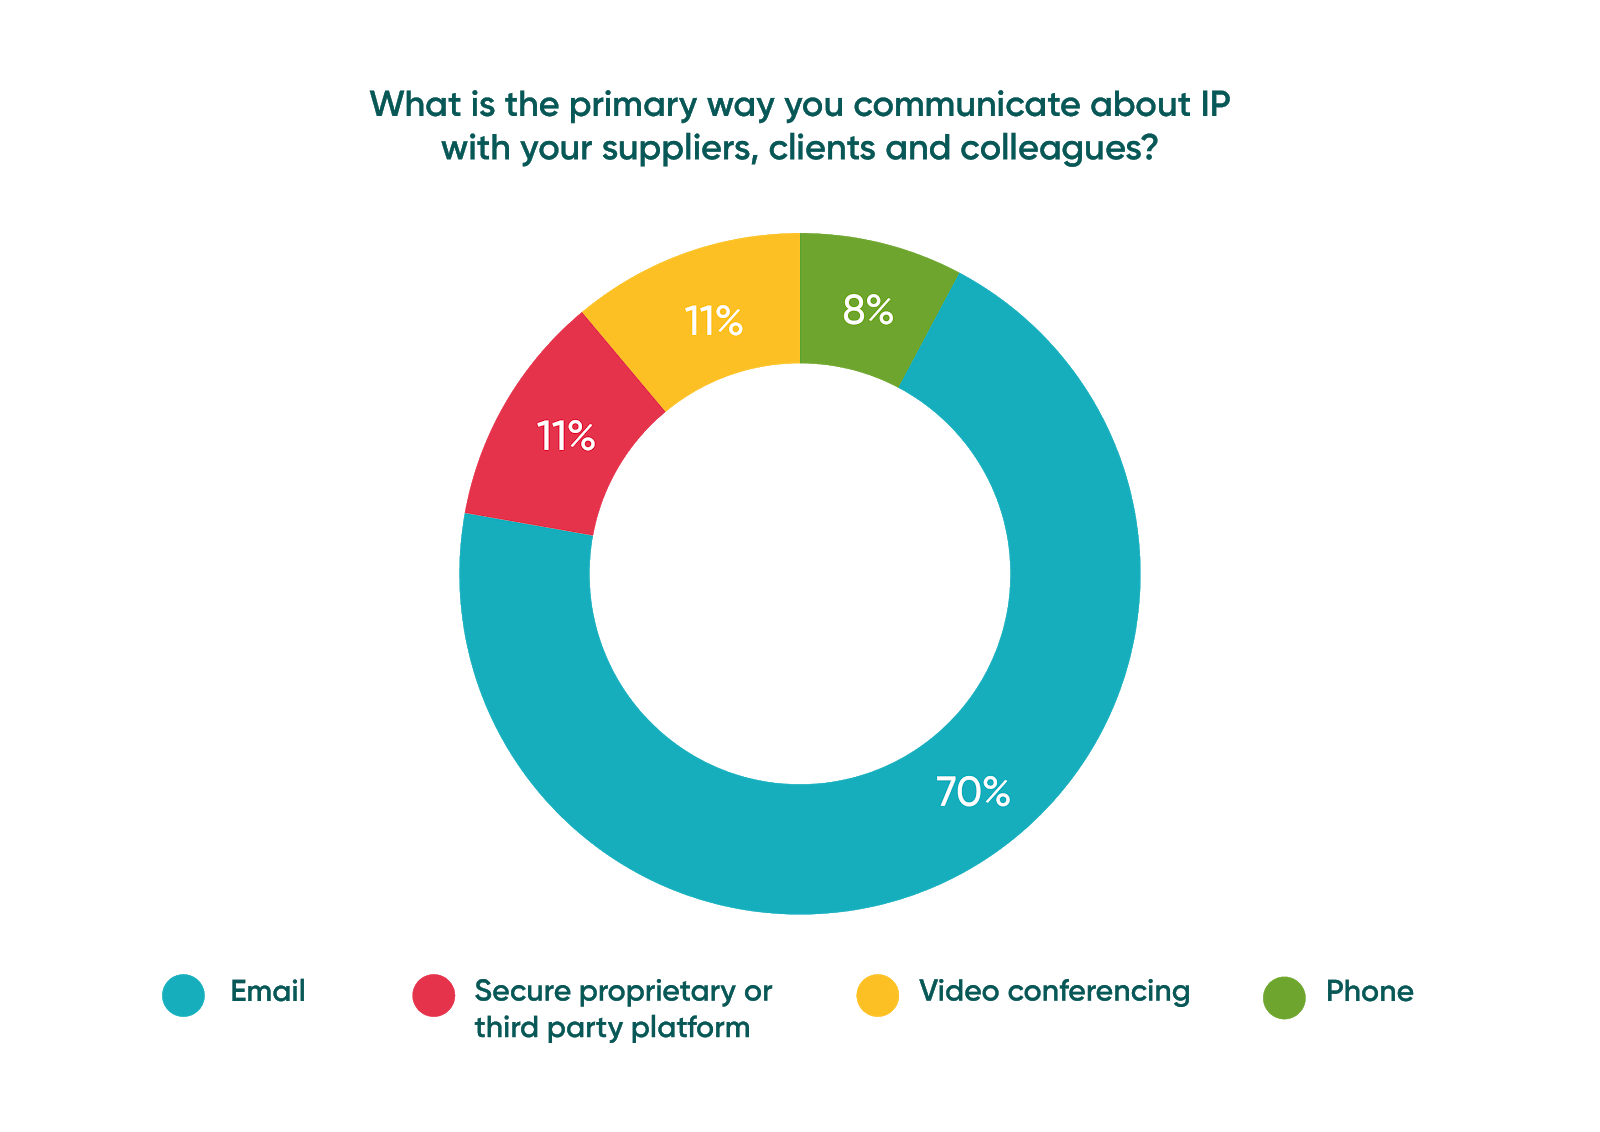 What is the primary way you communicate about IP with your suppliers, clients and colleagues?